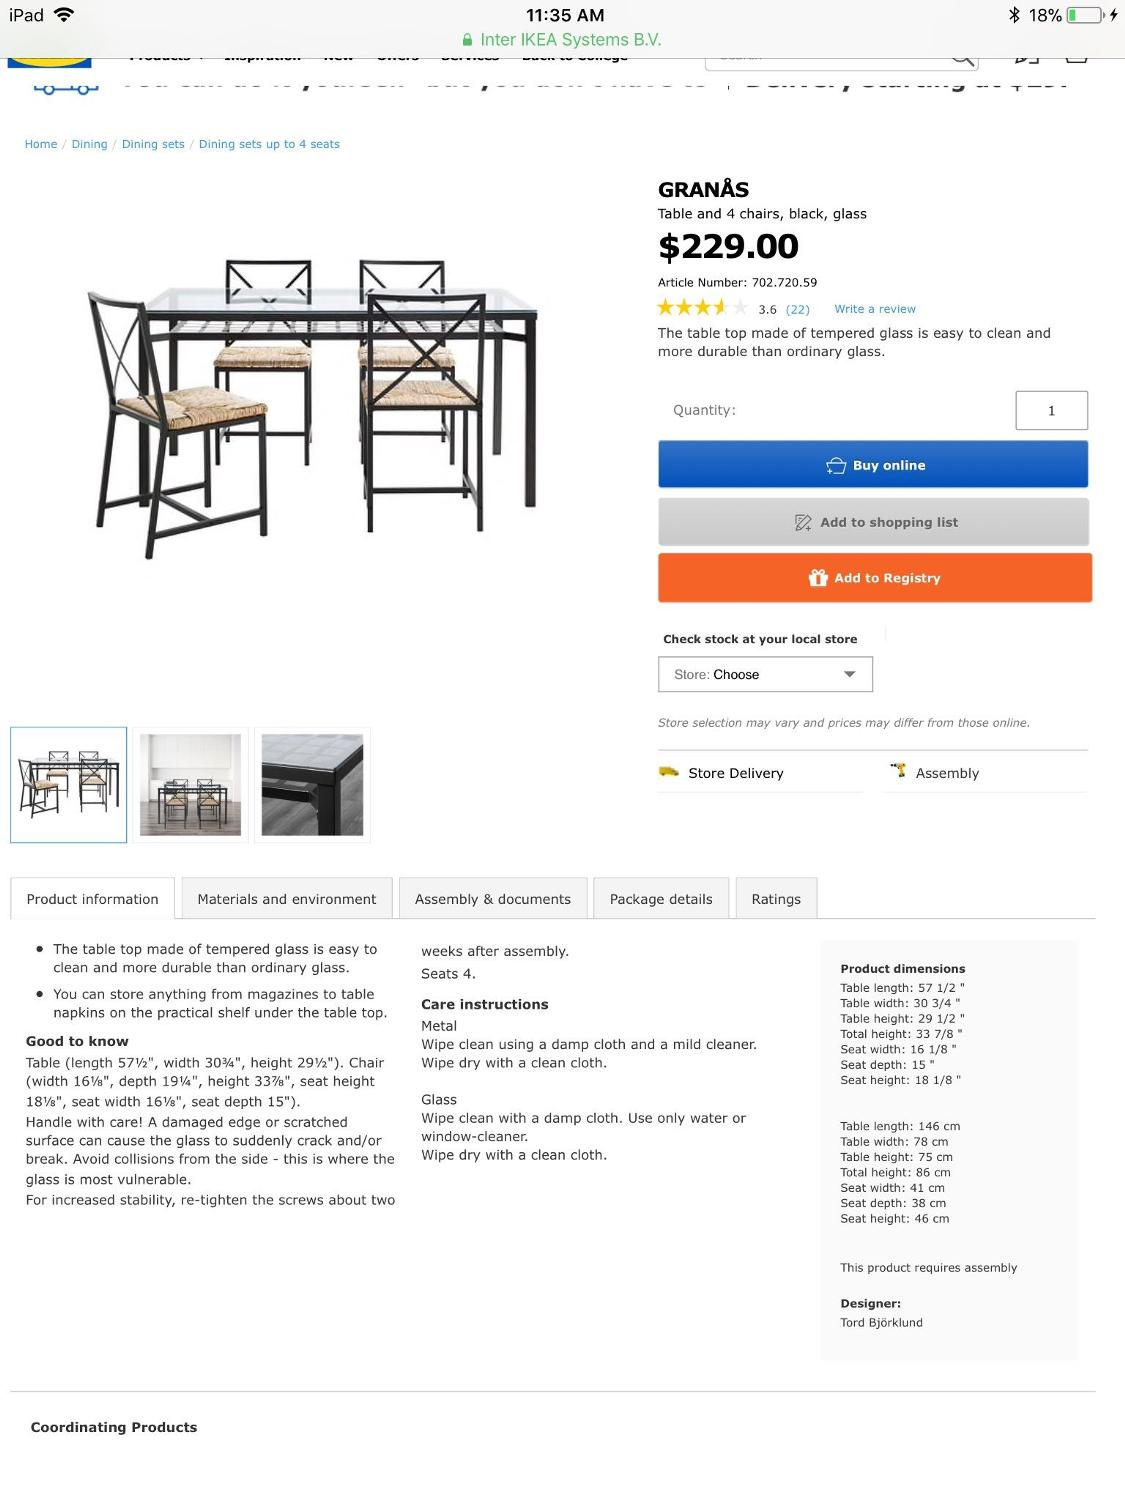 IKEA Granås Dining Table